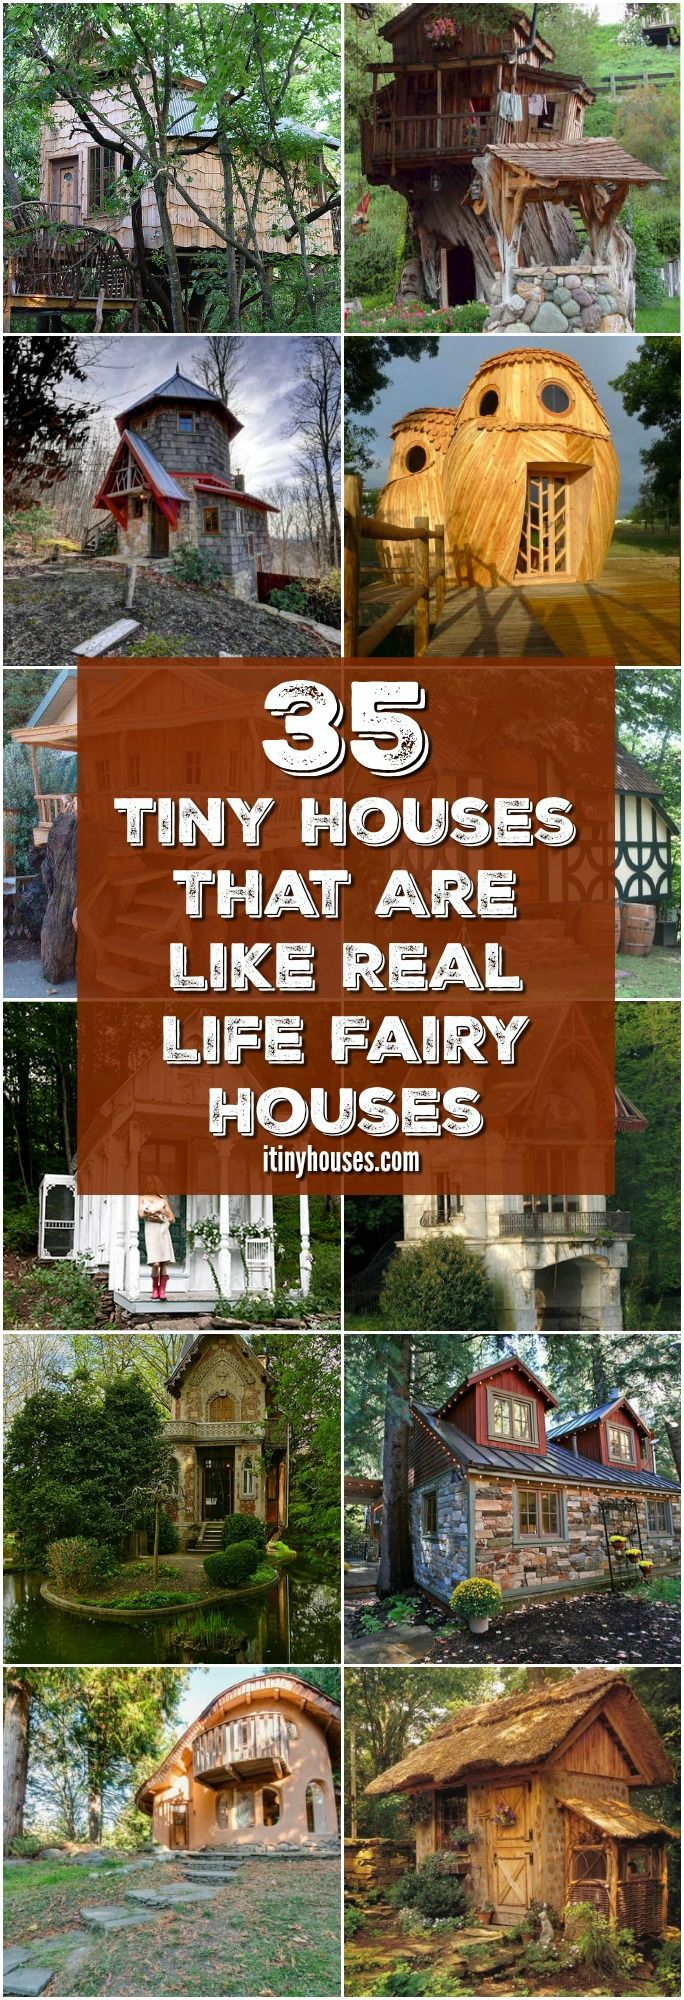 "These 35 Enchanting Tiny Houses Look Just Like Real Life Fairy Houses - If you've been looking to beautify your lawn or garden this year, chances are good you've stumbled across one of this year's biggest landscaping trends: tiny fairy houses. These imaginative little structures include all kinds of whimsical details, and can bring magic into any garden. But do you ever look at the fairy house in your garden and think, ""Why can't I live in a magical fairy house like that?"""